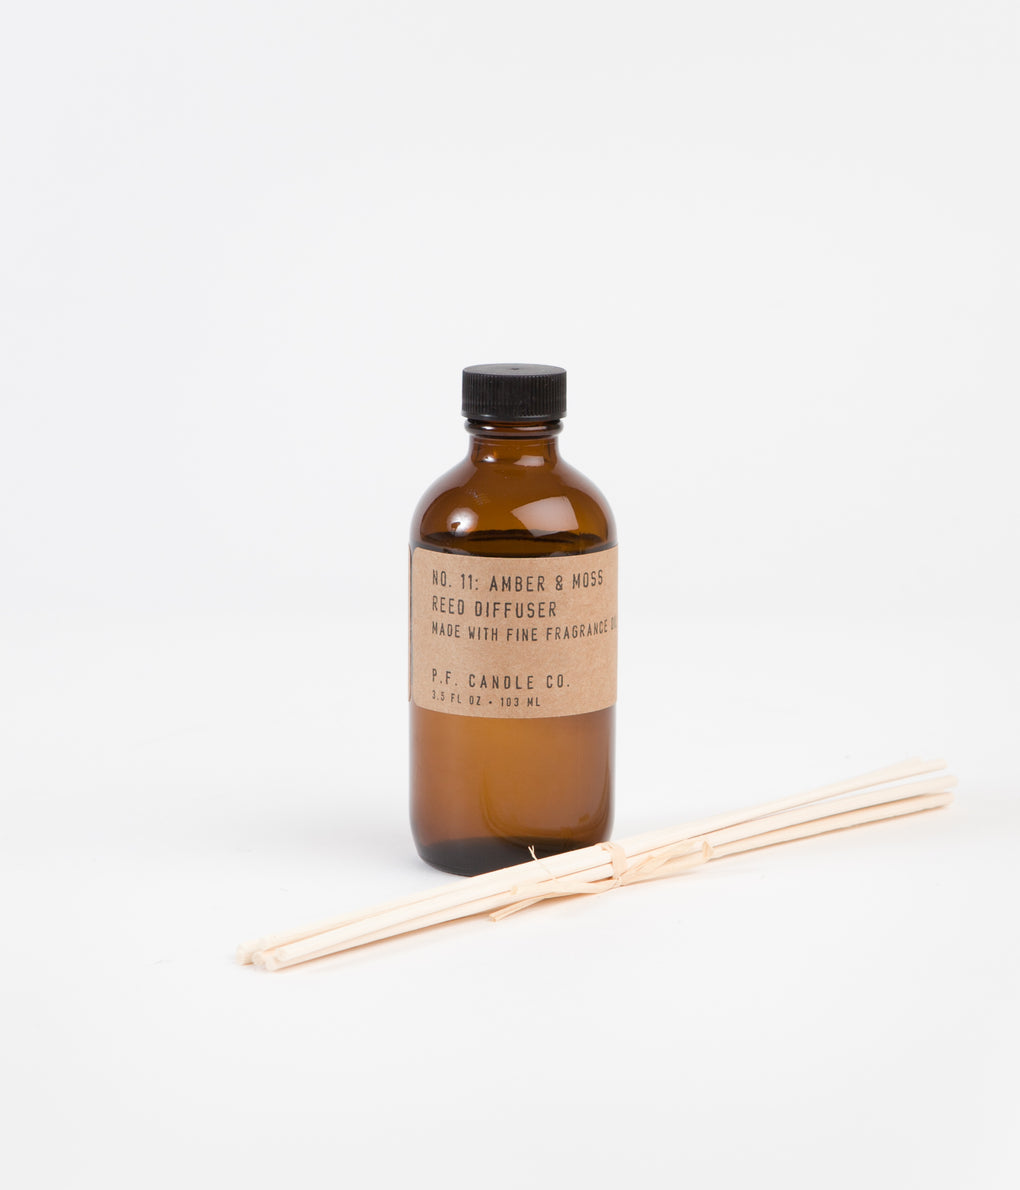 P.F. Candle Co. No. 11 Amber & Moss Reed Diffuser - 3oz